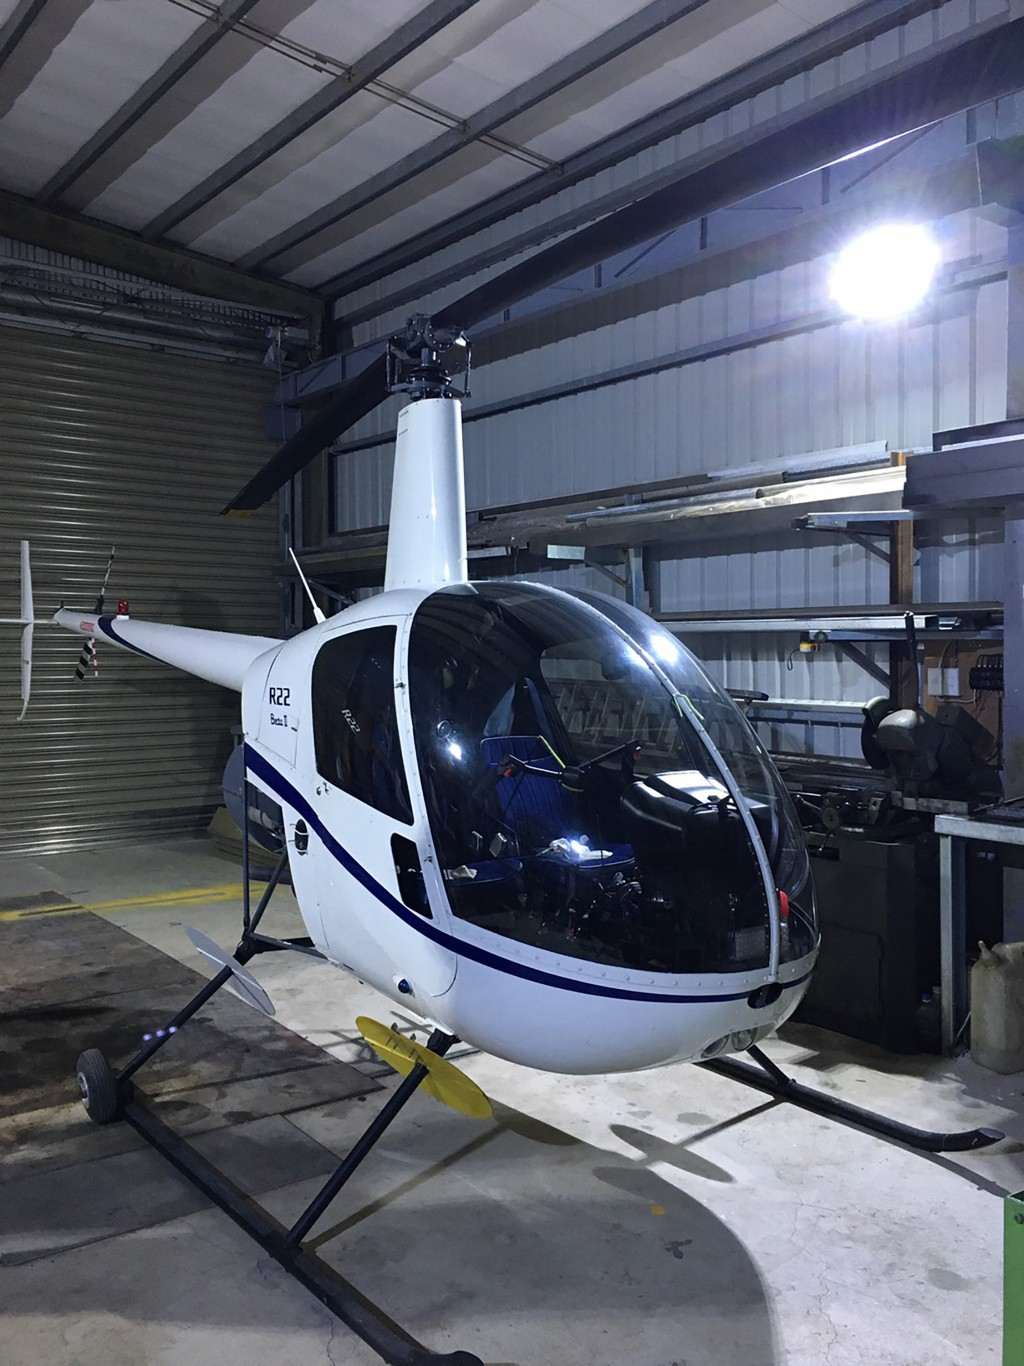 The owner showed his unlicensed helicopter to the police